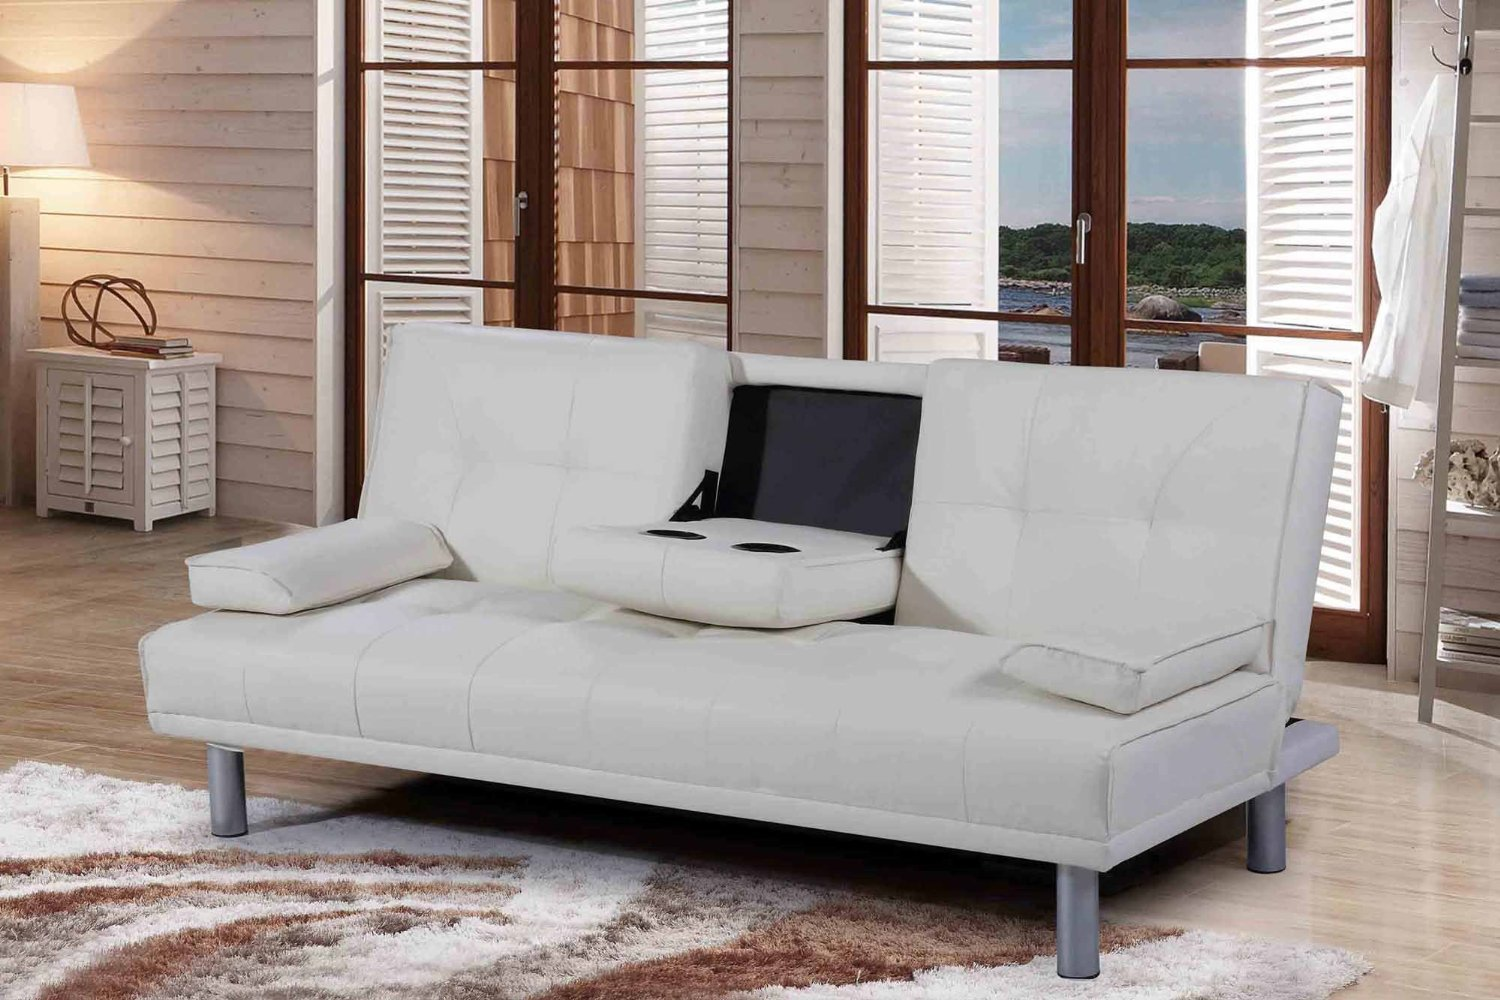 Cheap Cinema Manhattan Faux Leather Sofa Bed / Sofabed With Cup Holders ( White): Amazon.co.uk: Kitchen U0026 Home